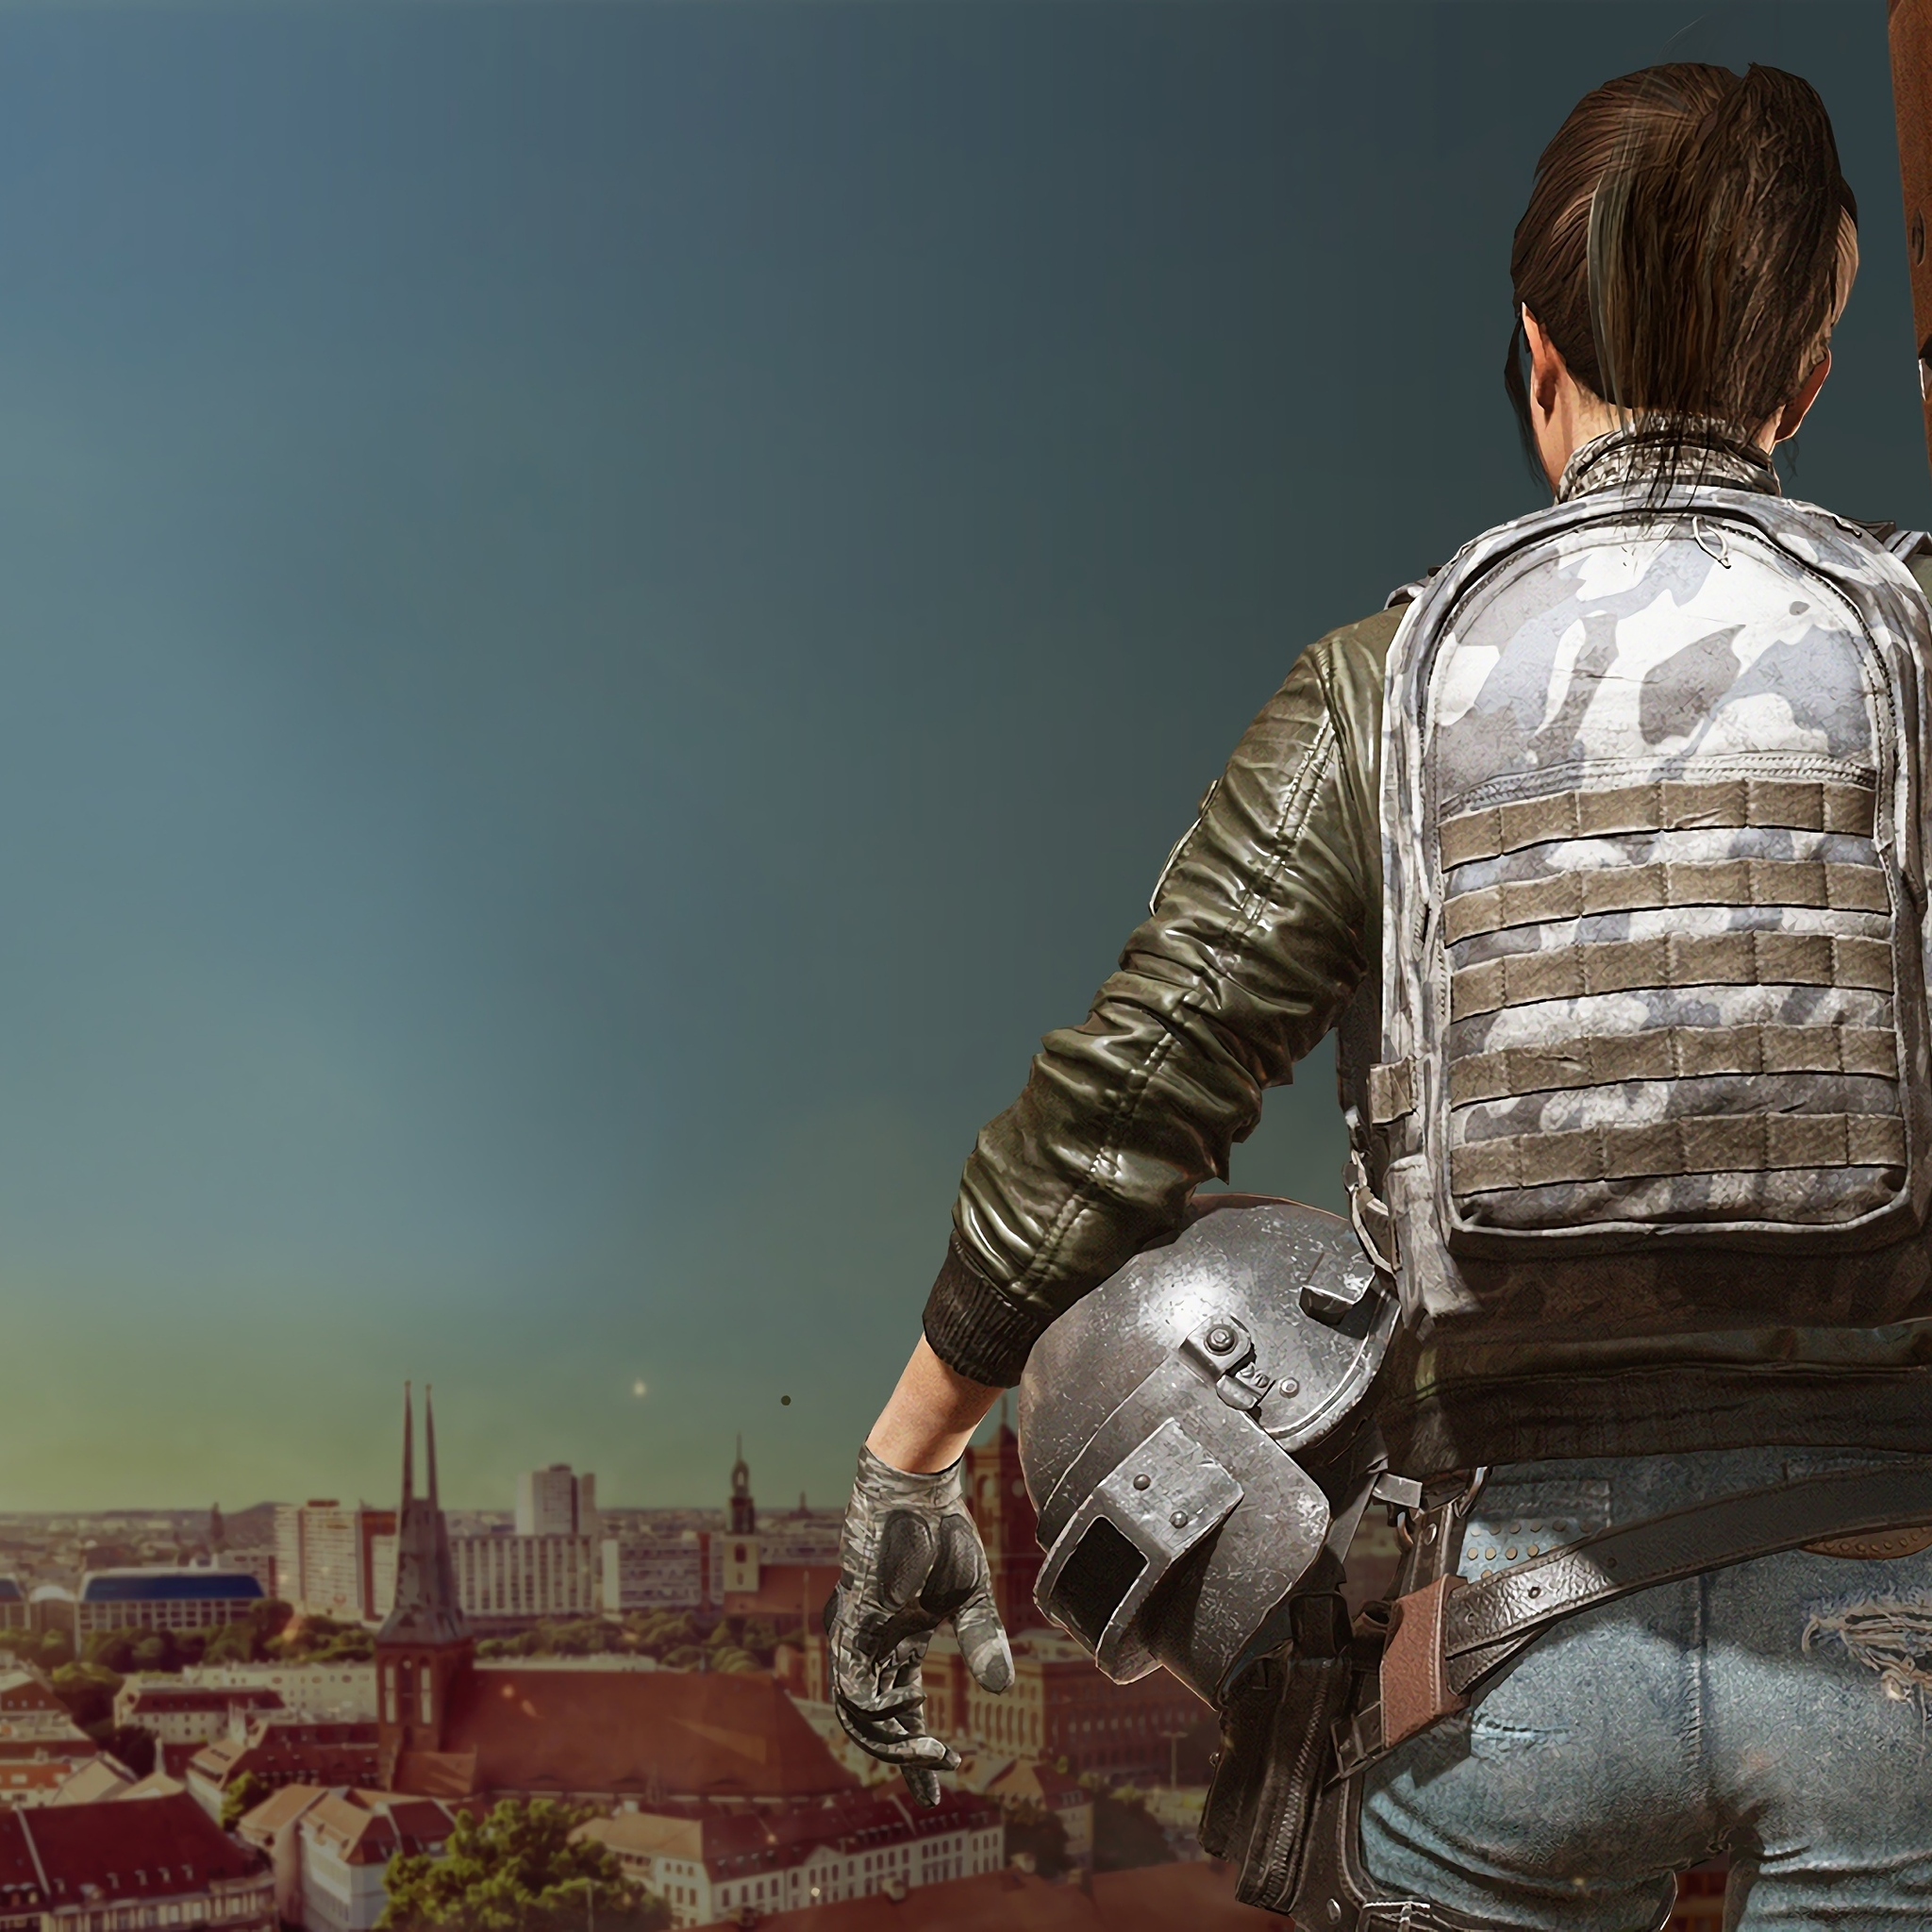 2048x2048 Game Girl Pubg 4k Ipad Air HD 4k Wallpapers